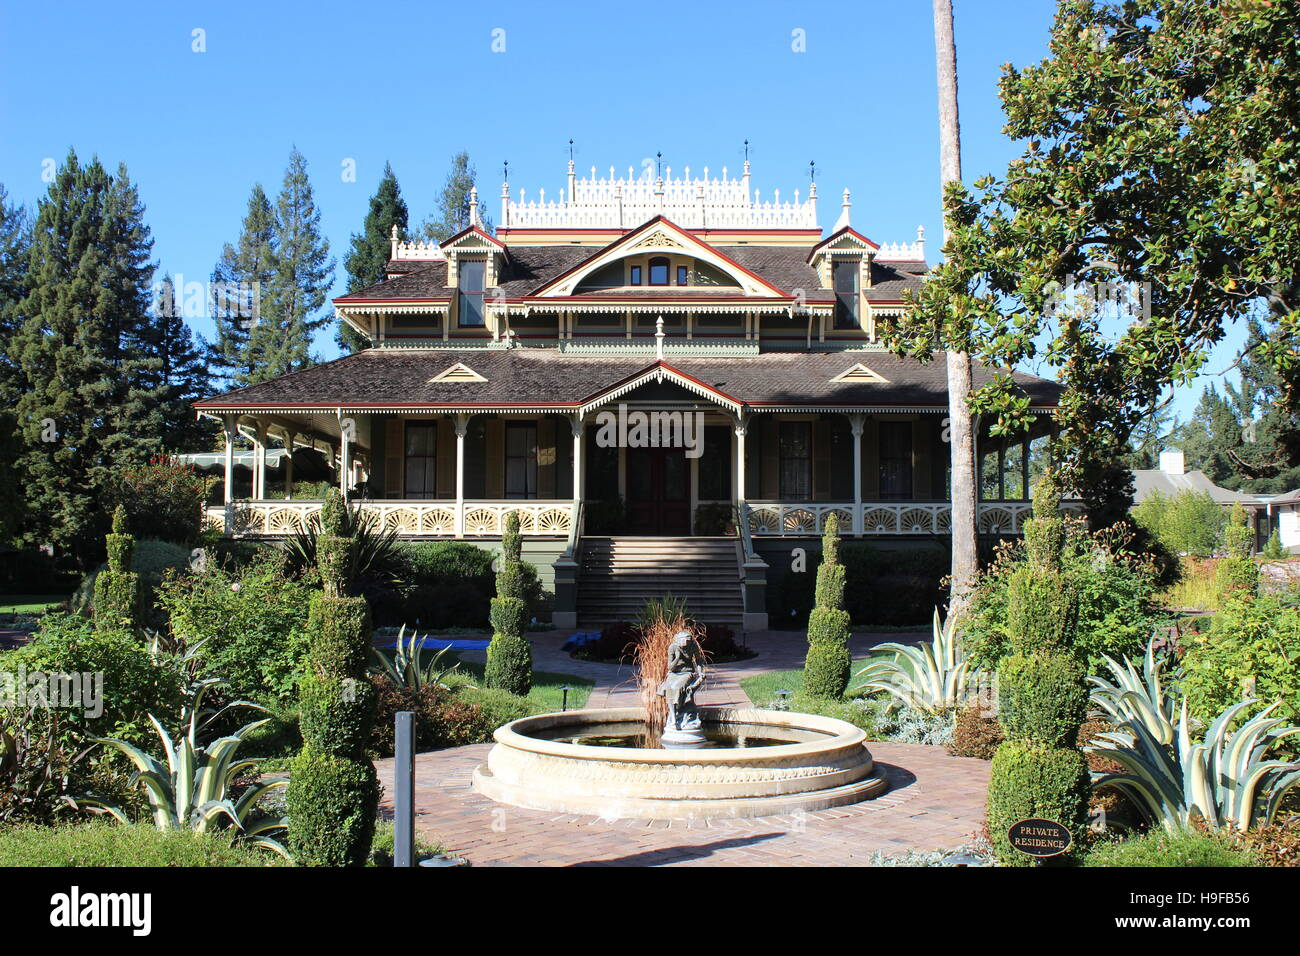 Mabelton, McDonald Mansion, Santa Rosa, California - Stock Image